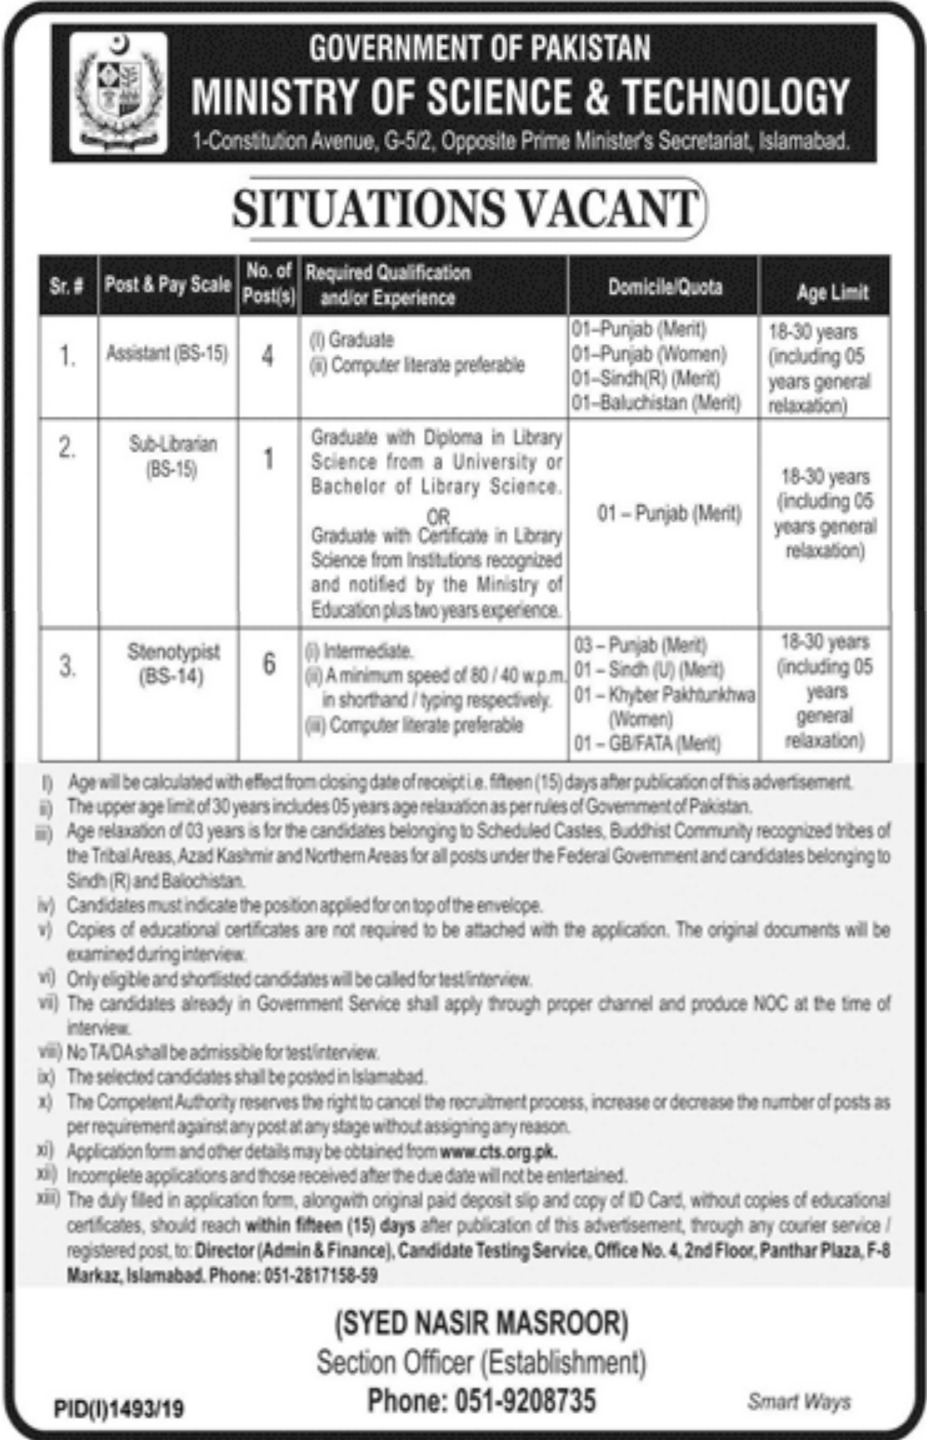 Ministry of Science & Technology Jobs 2019 Vacancies Advertisement Latest